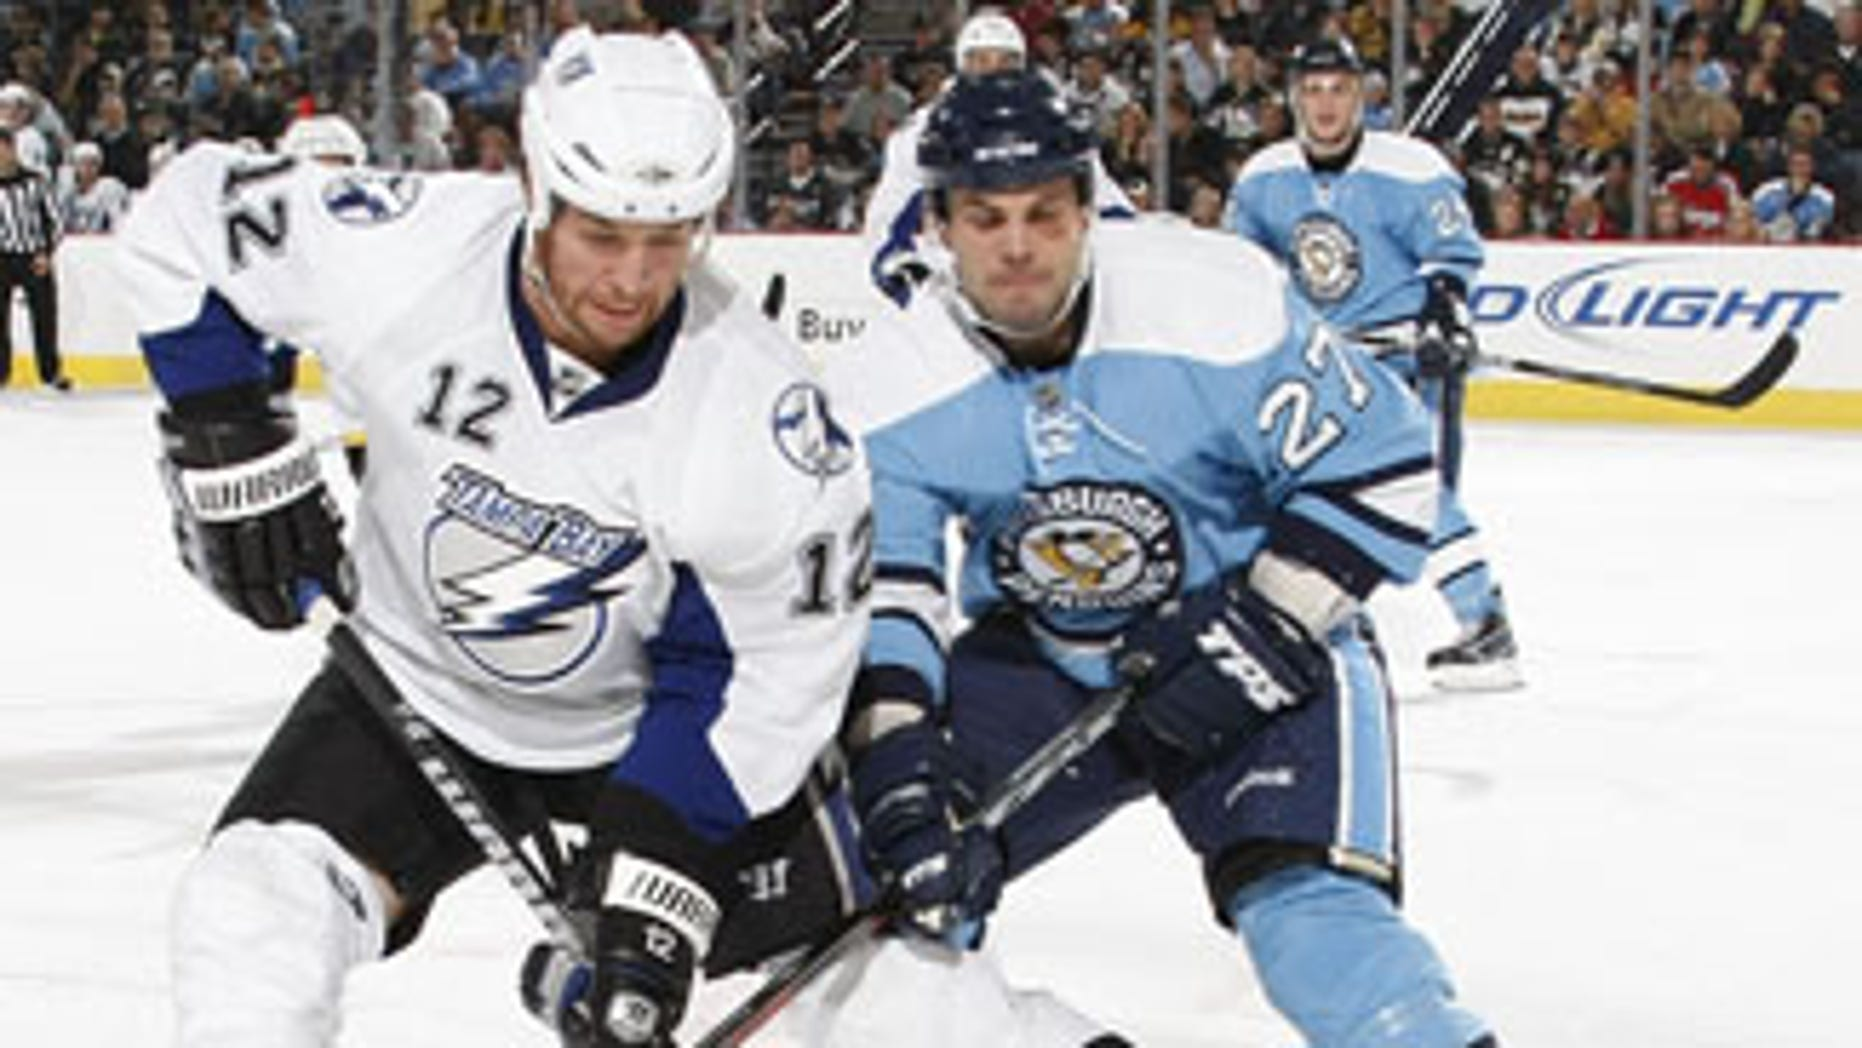 PITTSBURGH - OCTOBER 17:  Ryan Malone #12 of the Tampa Bay Lightning controls the puck in front of the defense of Craig Adams #27 of the Pittsburgh Penguins on October 17, 2009 at Mellon Arena in Pittsburgh, Pennsylvania.  (Photo by Gregory Shamus/NHLI via Getty Images) *** Local Caption *** Ryan Malone;Craig Adams